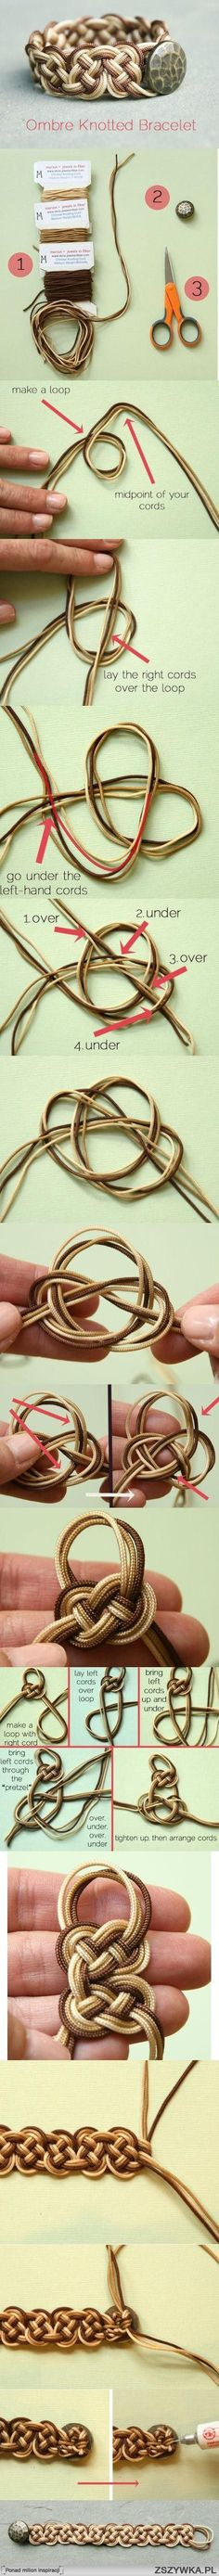 ombre celtic knot bracelet - Click image to find more Women's Fashion Pinterest pins